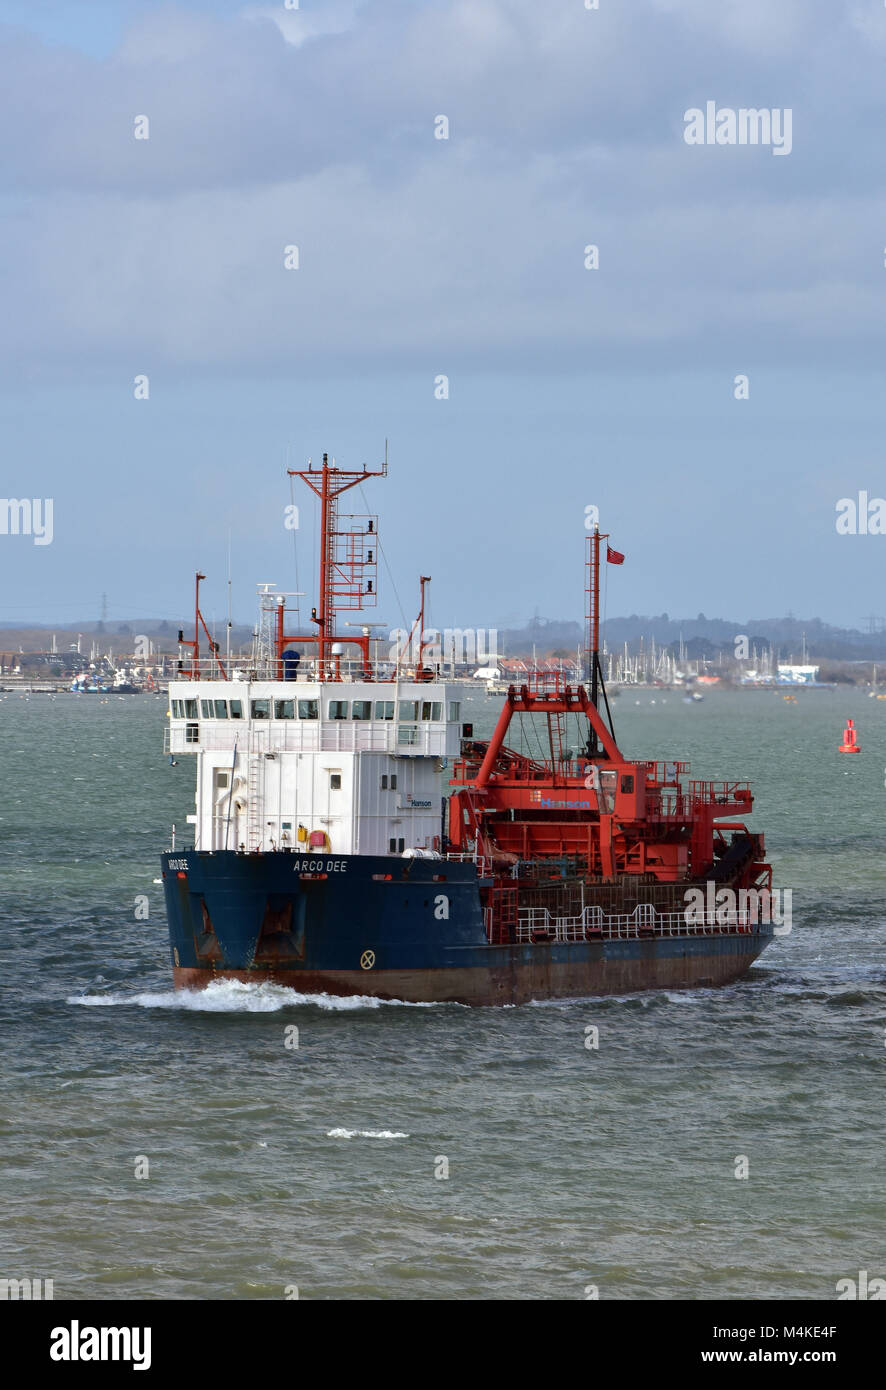 the arco axe dredger or dredging ship leaving the port of southampton. - Stock Image